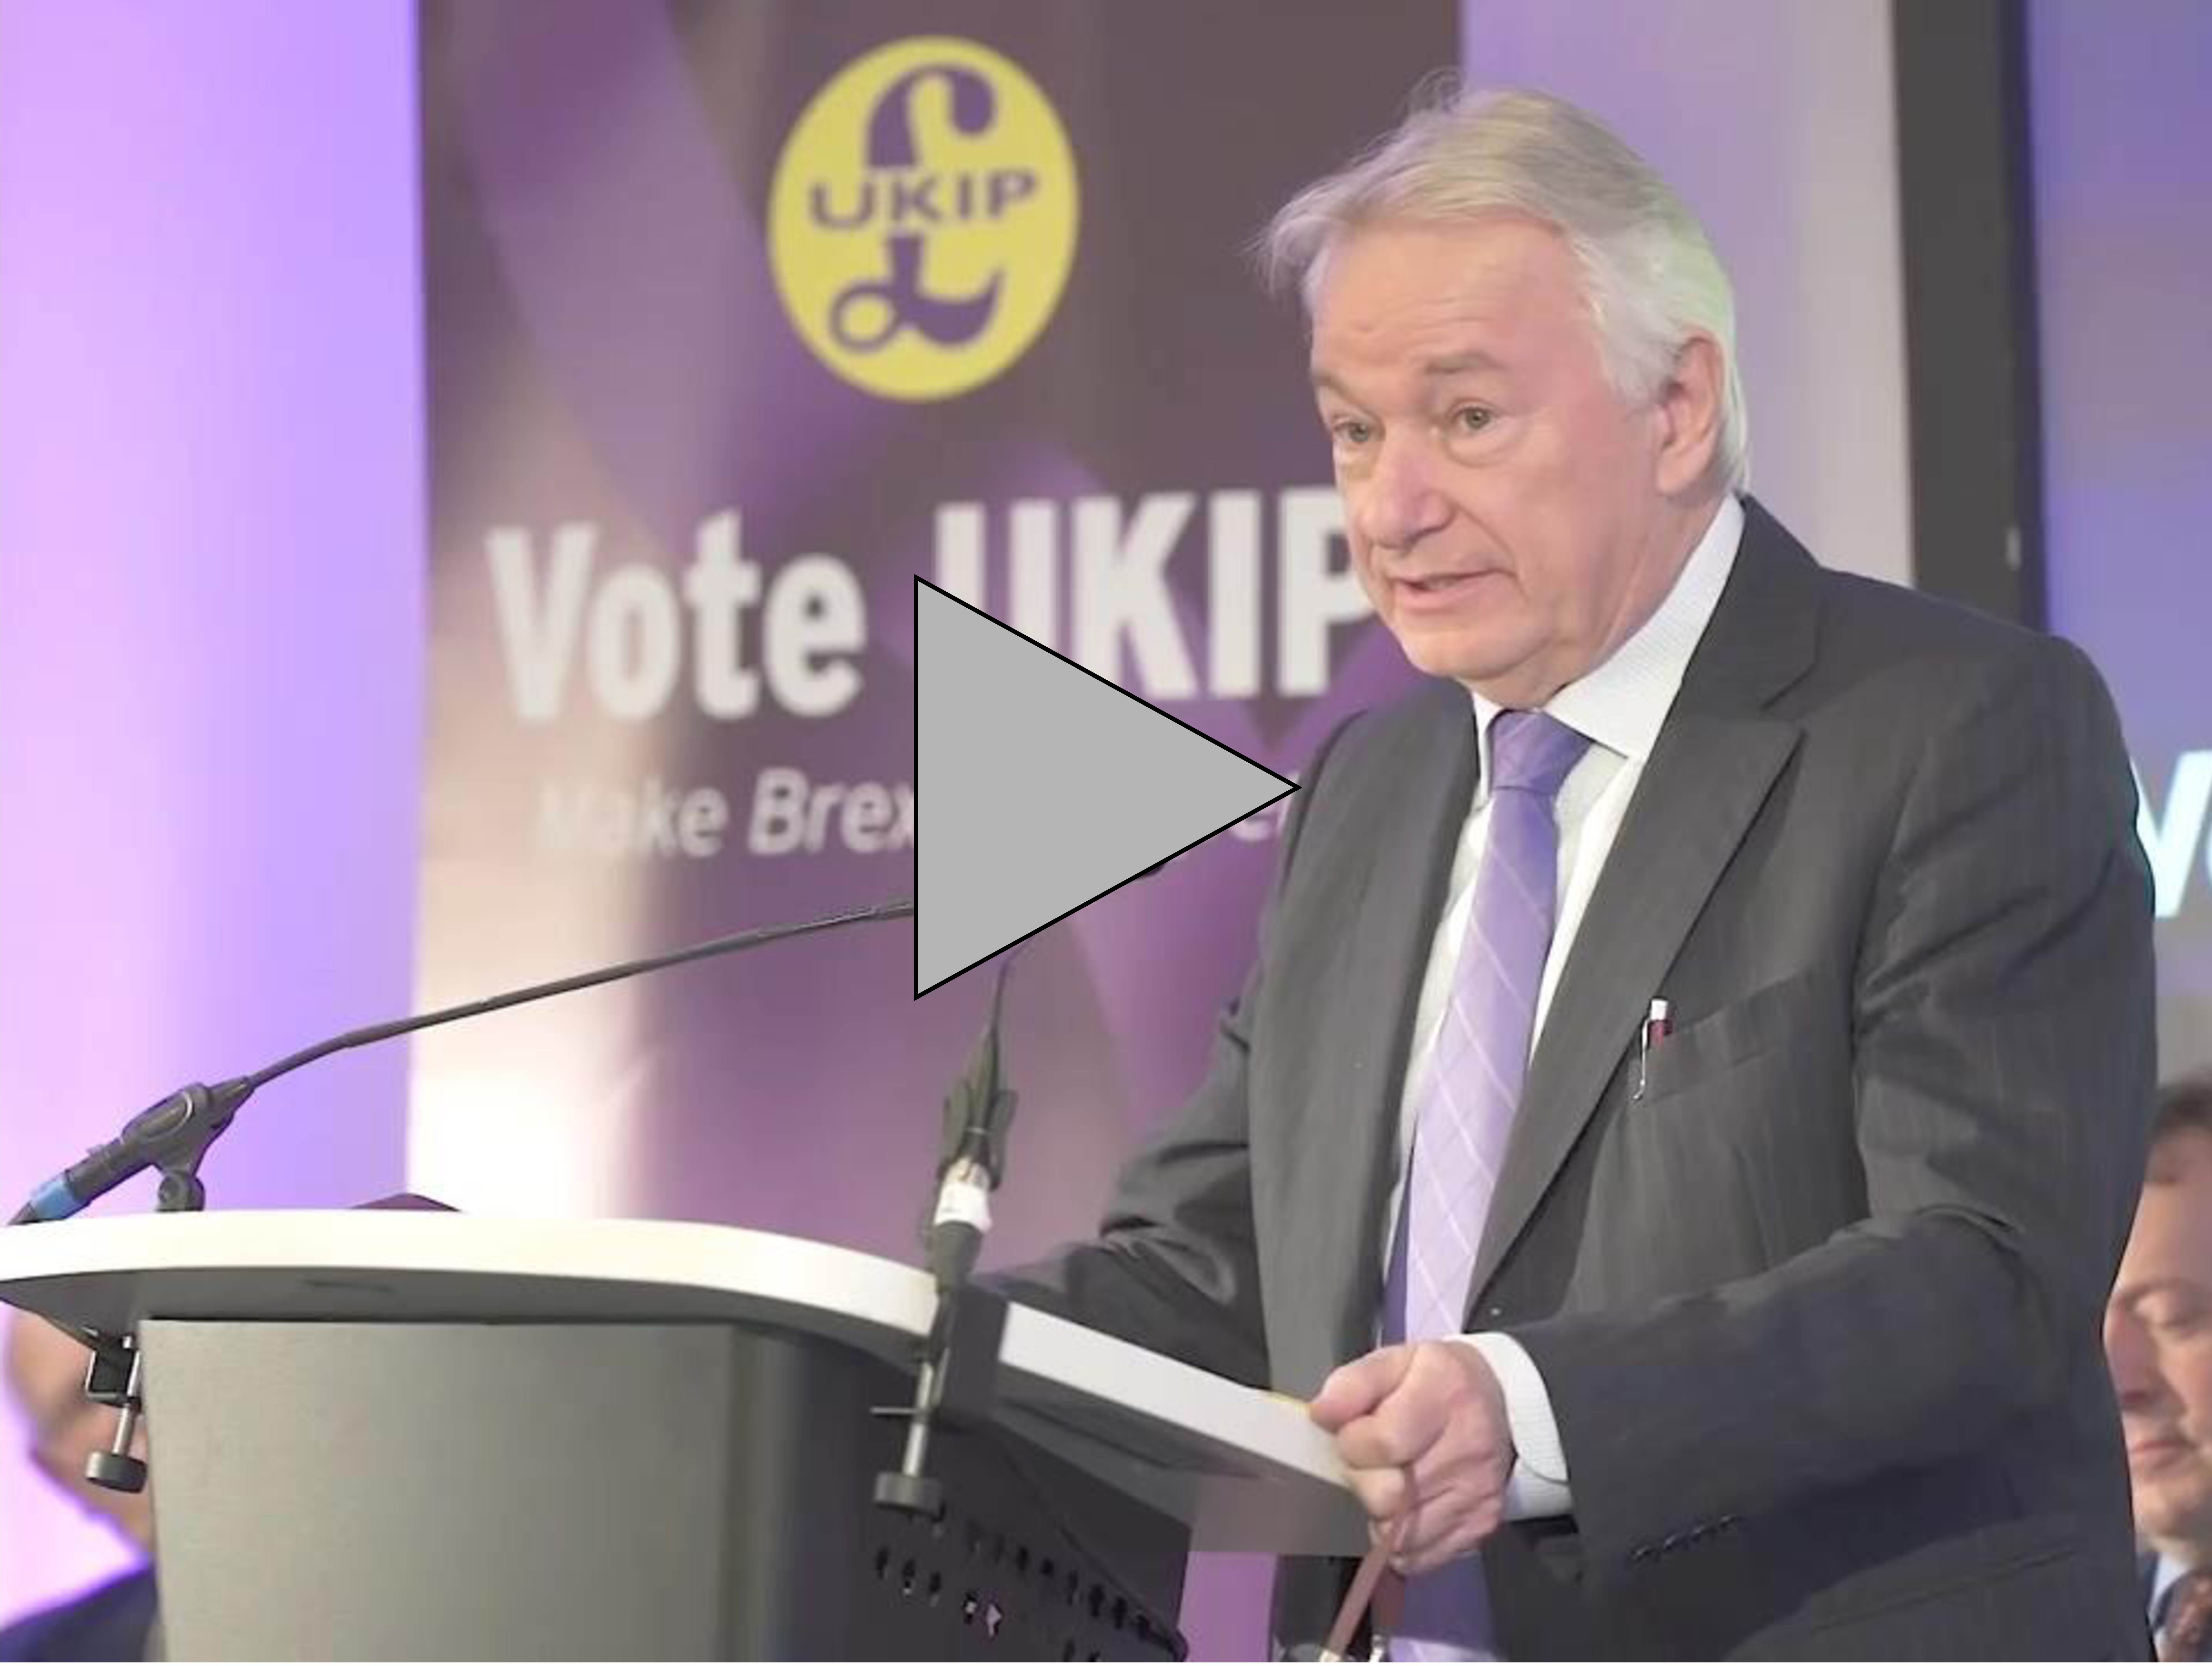 Richard Elvin speaks at UKIP